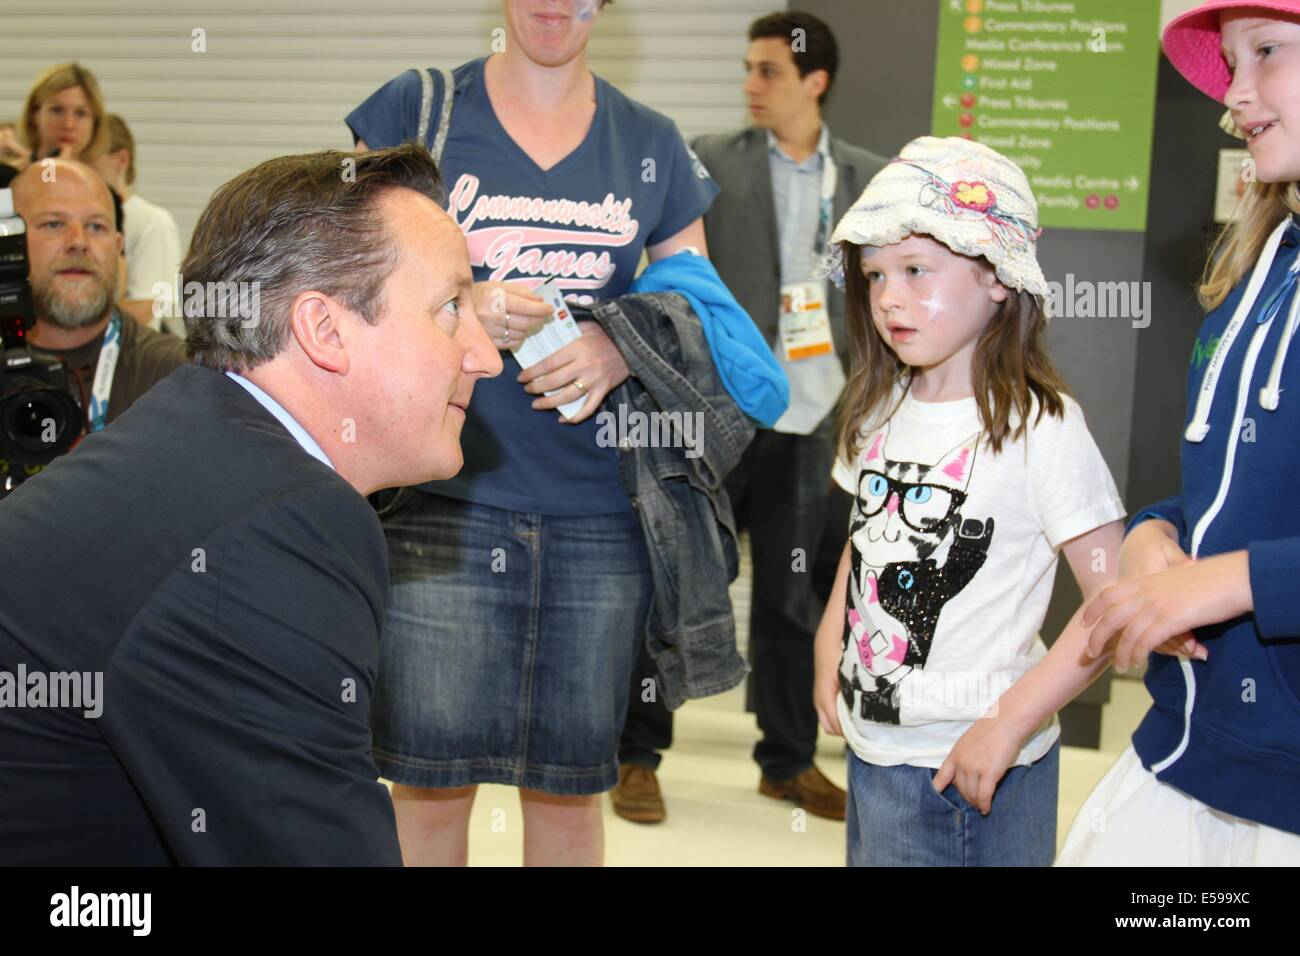 Glasgow, Scotland, UK. 24th July 2014. British Prime Minister David Cameron visits the Sir Chris Hoy Velodrome to watch the first session of track cycling and to meet athletes and volunteers Credit:  Neville Styles/Alamy Live News Stock Photo